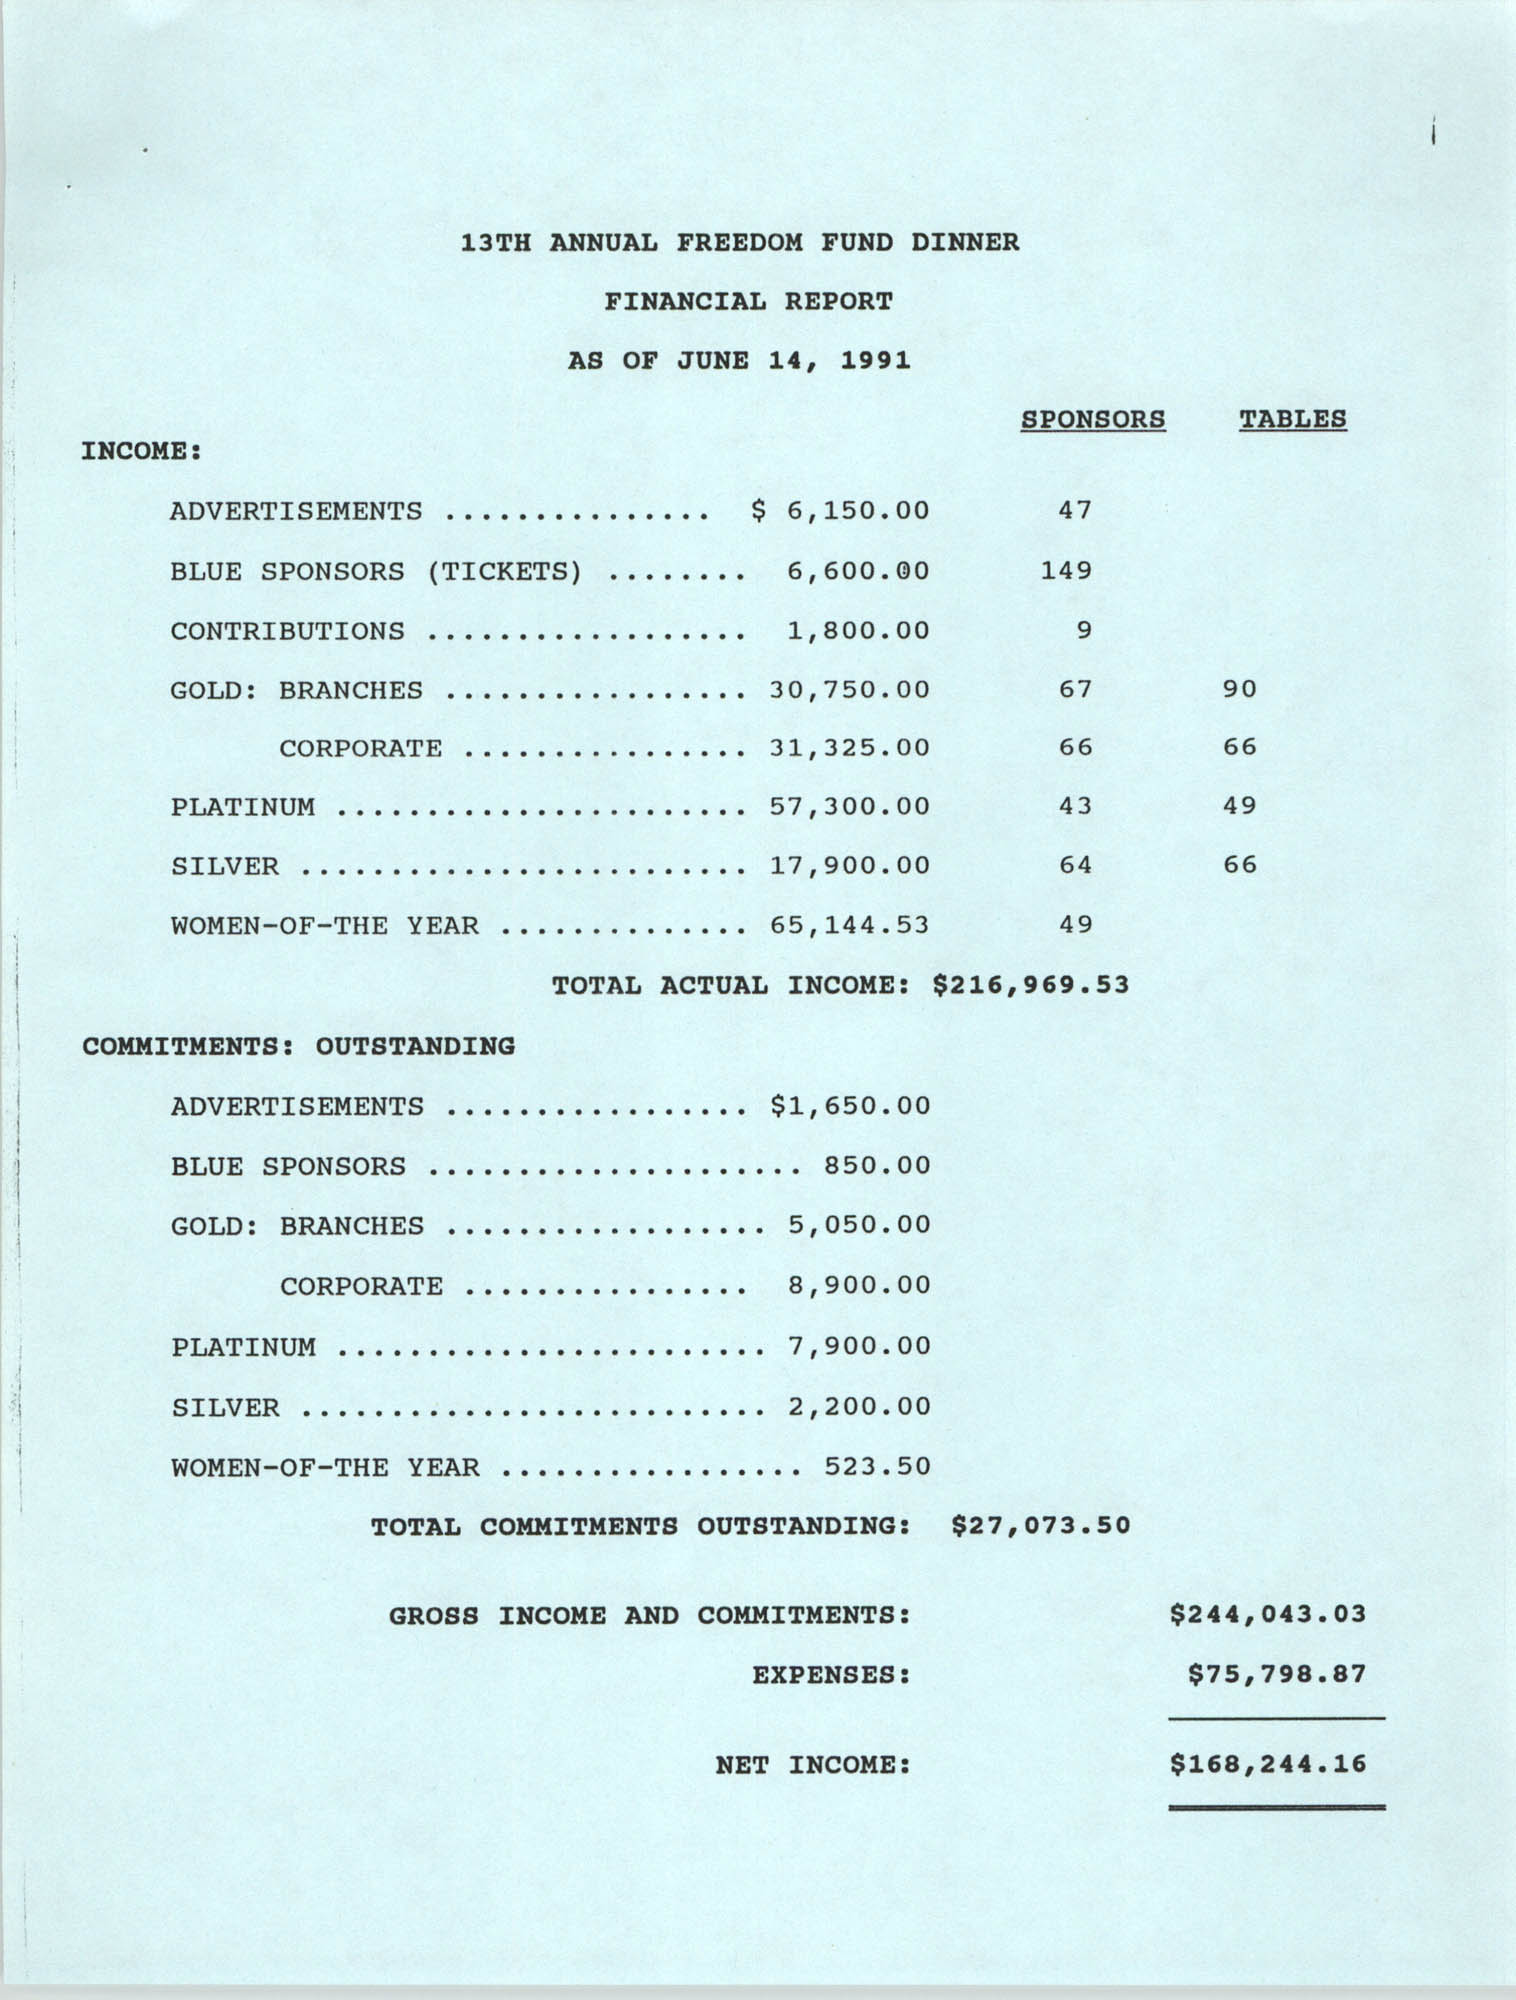 13the Annual Freedom Fund Dinner, Financial Report, June 14, 1991